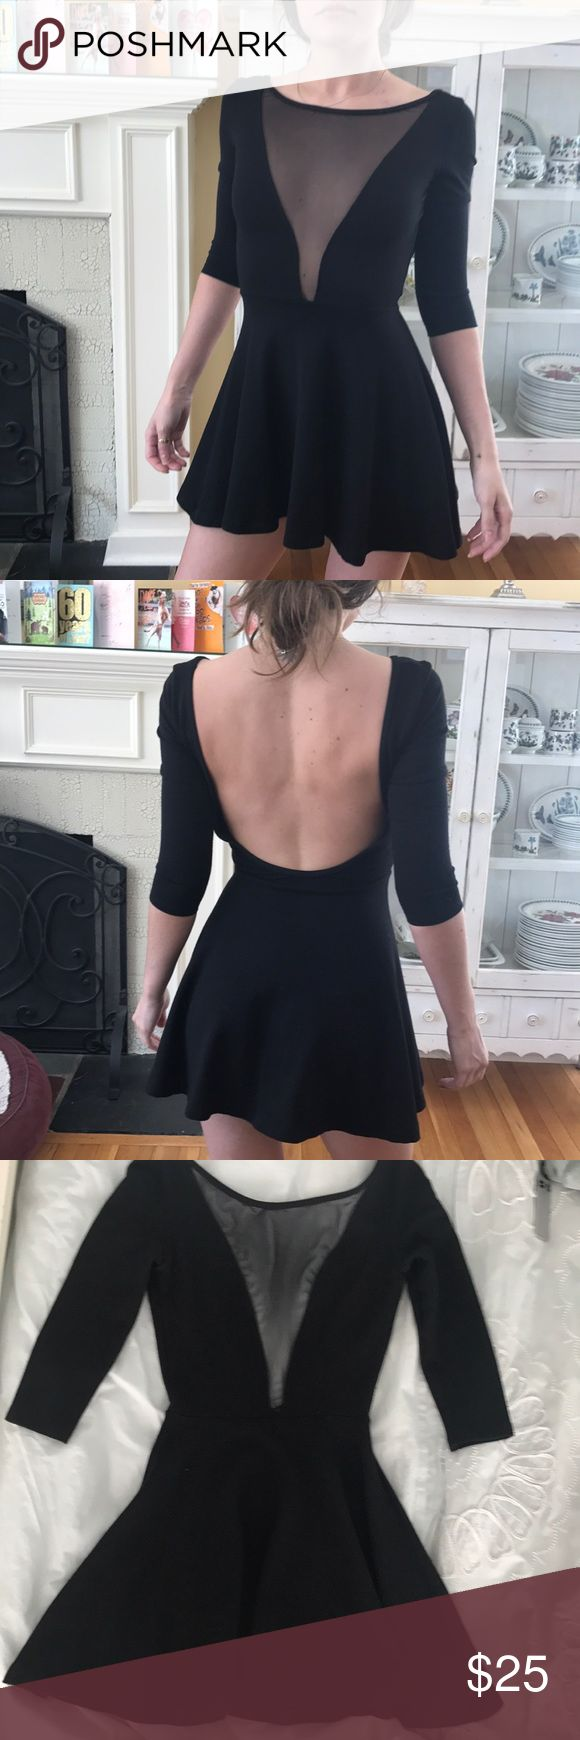 🎉American Apparel Black Mini Dress🎉 🎉American Apparel Black Mini Dress🎉 Size Small. Pre-Loved but in perfect condition!!! Absolutely adorable& perfect for any occasion 💕😊 American Apparel Dresses Mini